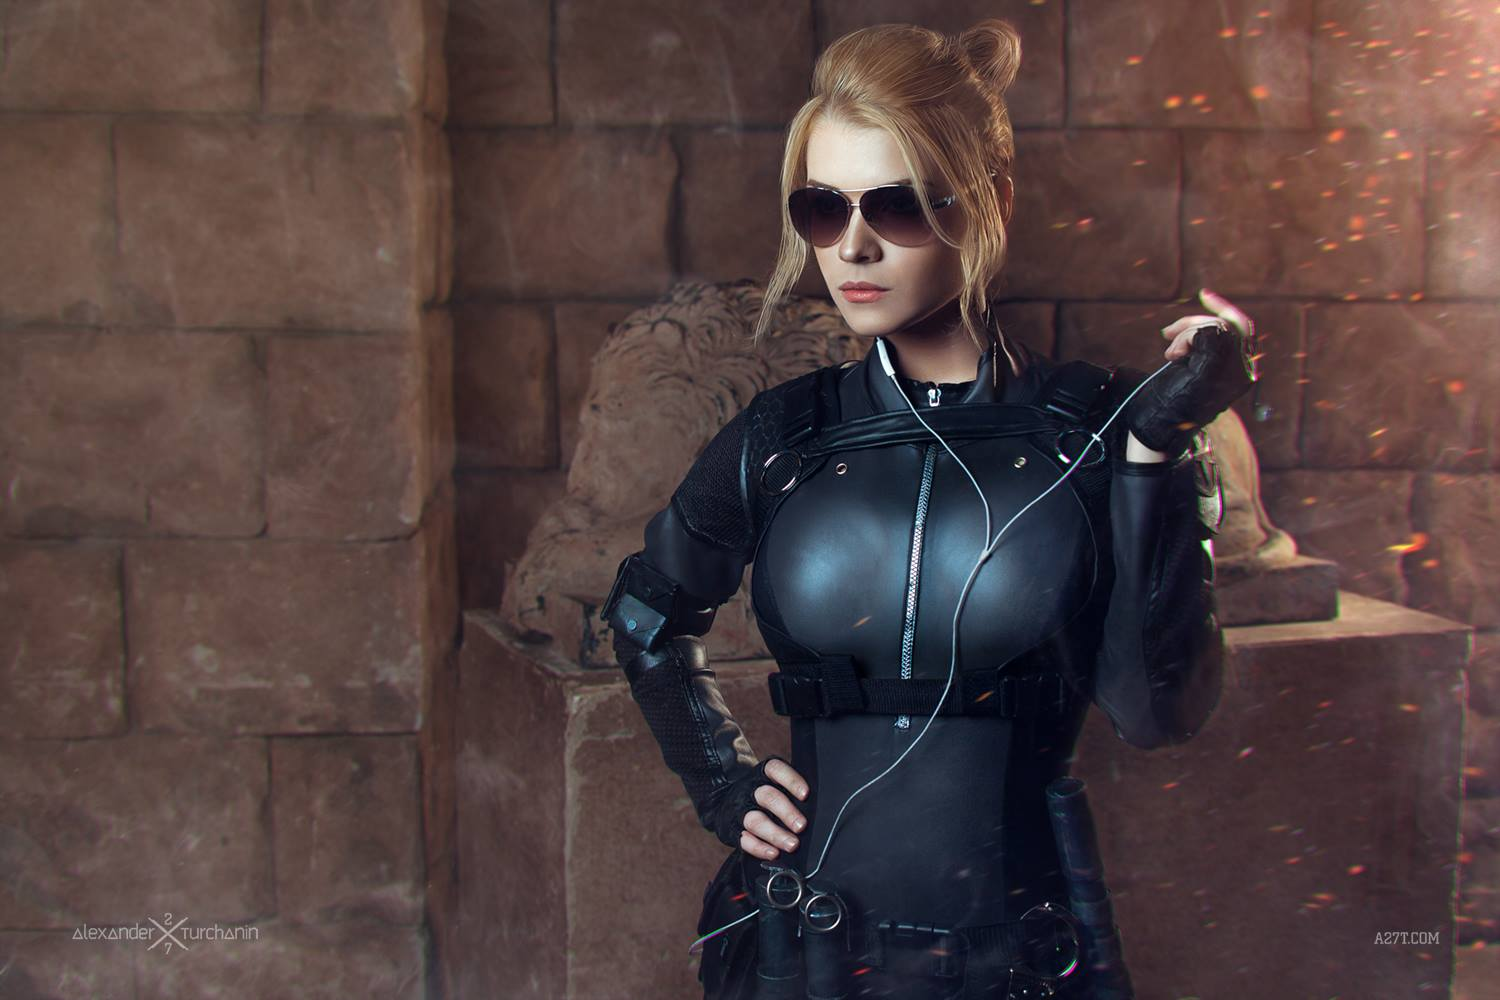 Russian cosplayer extraordinaire CaptainIrachka is the spitting image of bubble-gum blowing, pistol-popping, skintight leather bodysuit wearing Special Forces agent Sgt. Cassandra Carlton Cage from Mortal Kombat X.  Don't stare for too long though; let the daughter of Sonya Blade and Johnny Cage take a selfie on you and it'll be your last time checking anyone out.